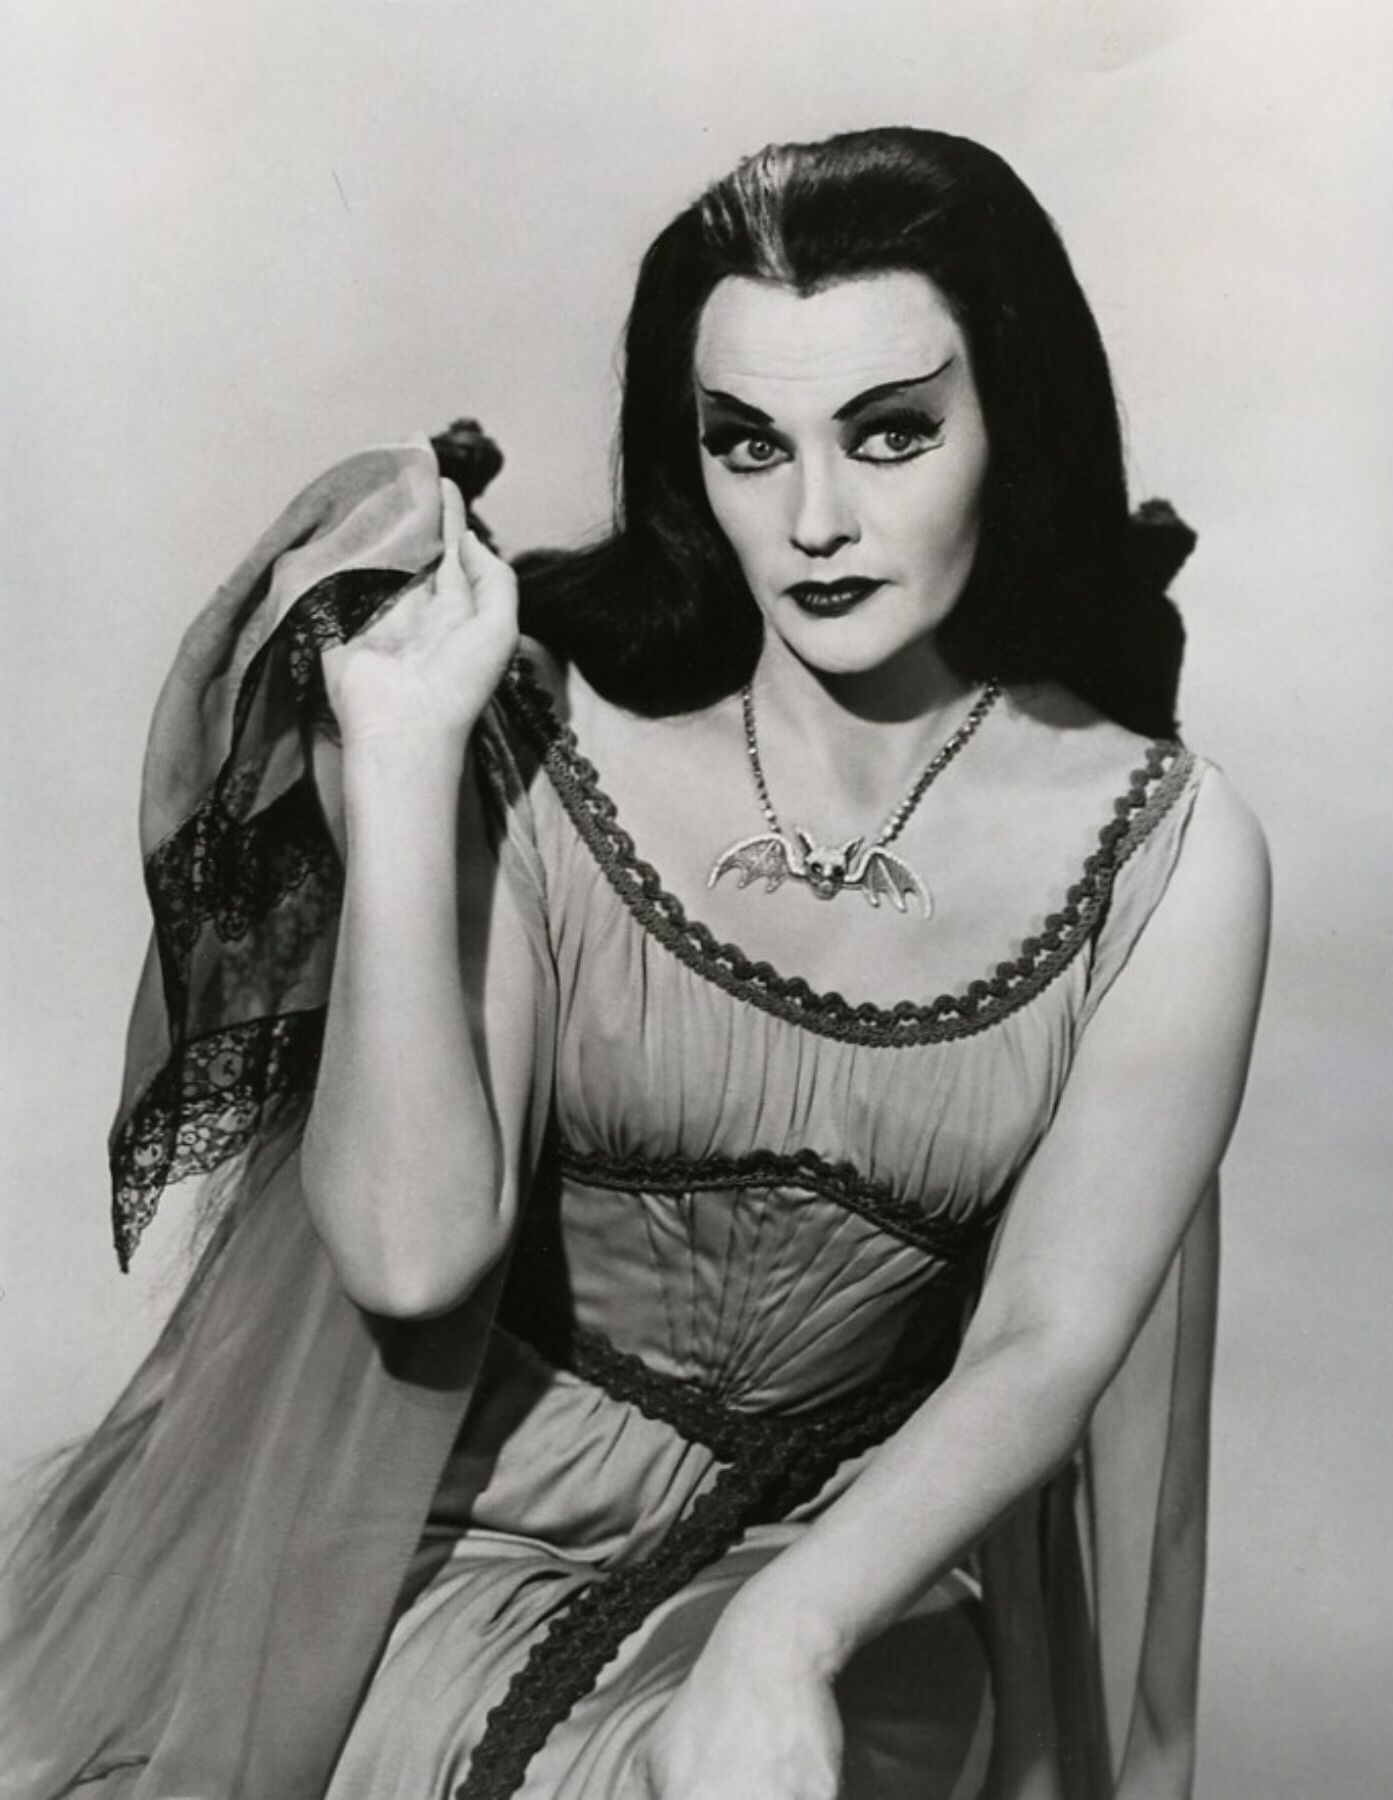 Yvonne De Carlo as Lily Munster, c. 1964